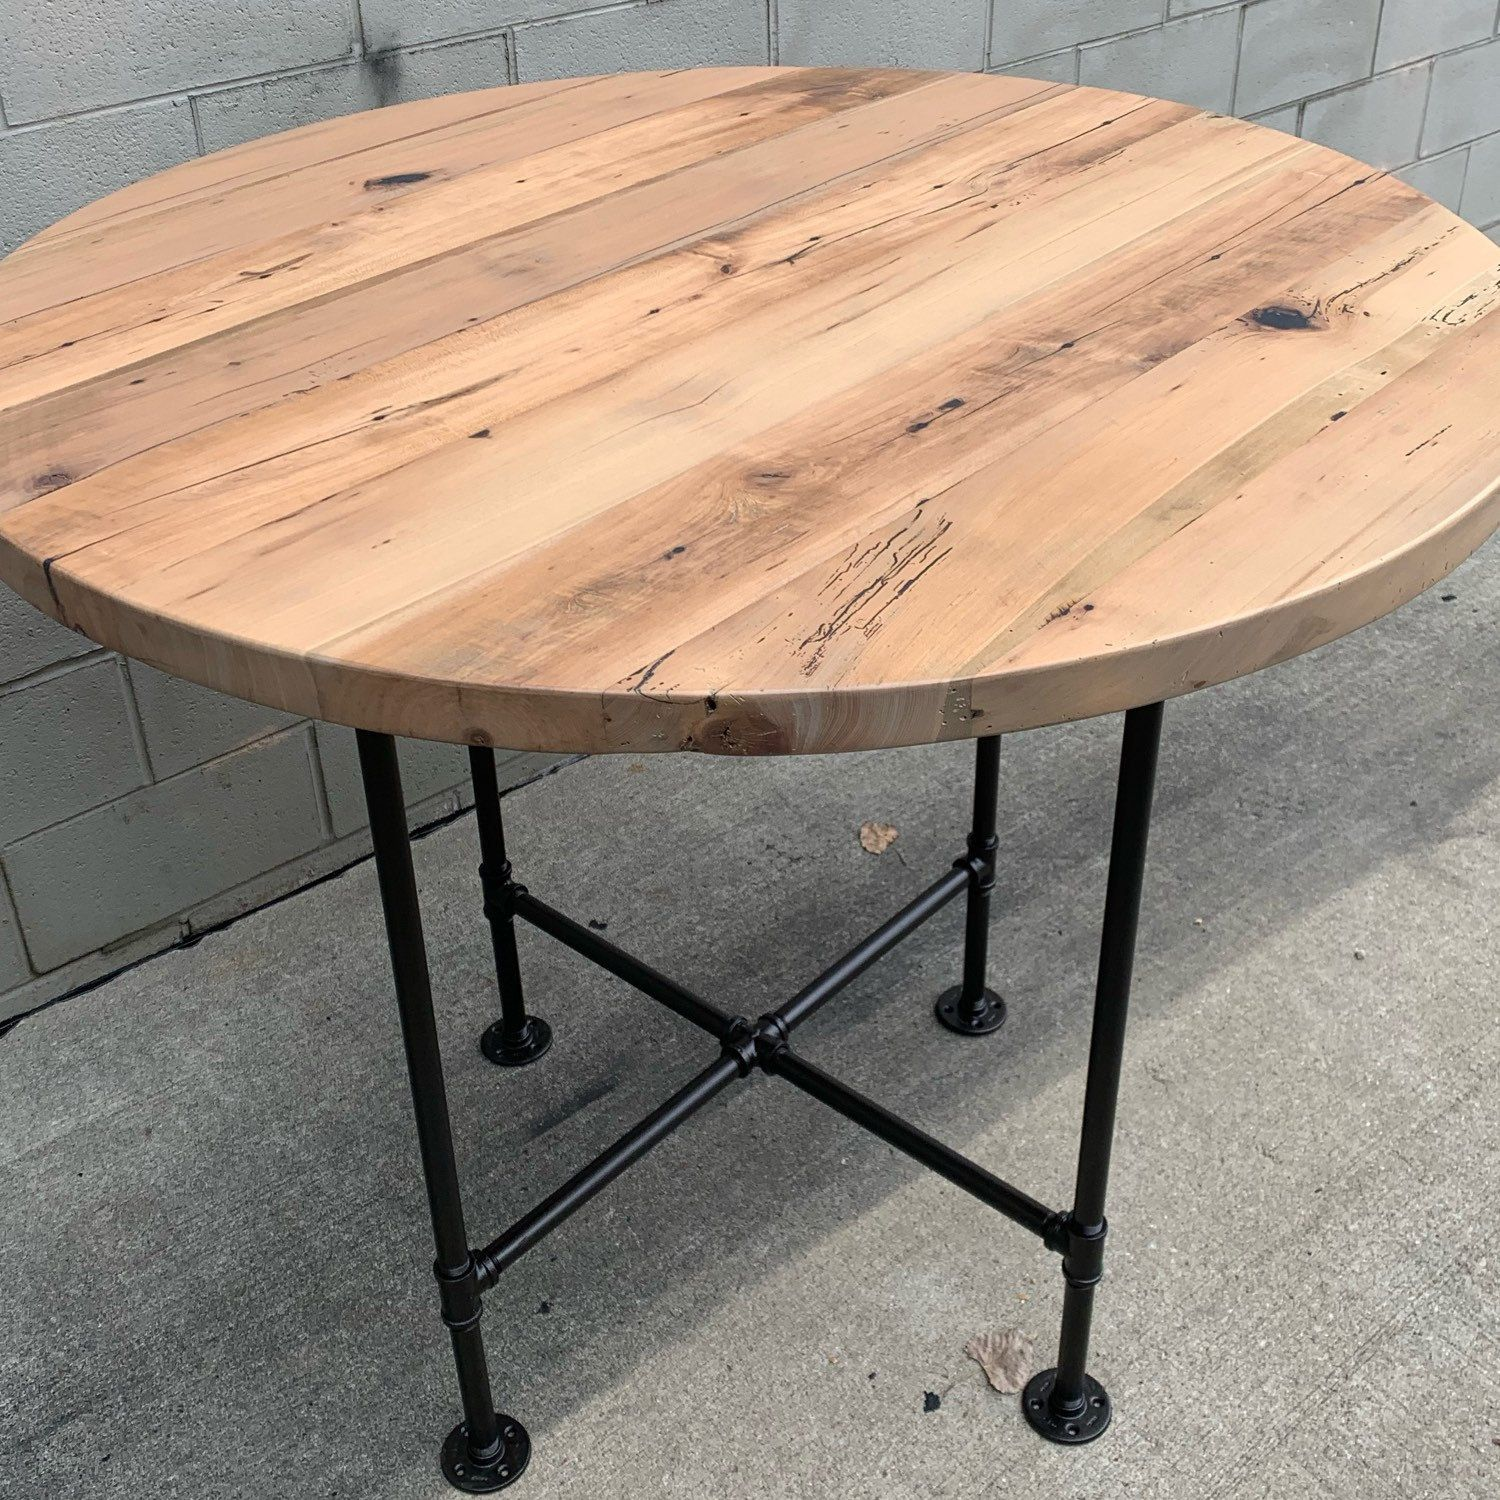 Reclaimed Barnwood Round Table Dinner Dinning Restaurant Etsy High Top Dining Table Dining Table High Top Table Kitchen [ 1500 x 1500 Pixel ]